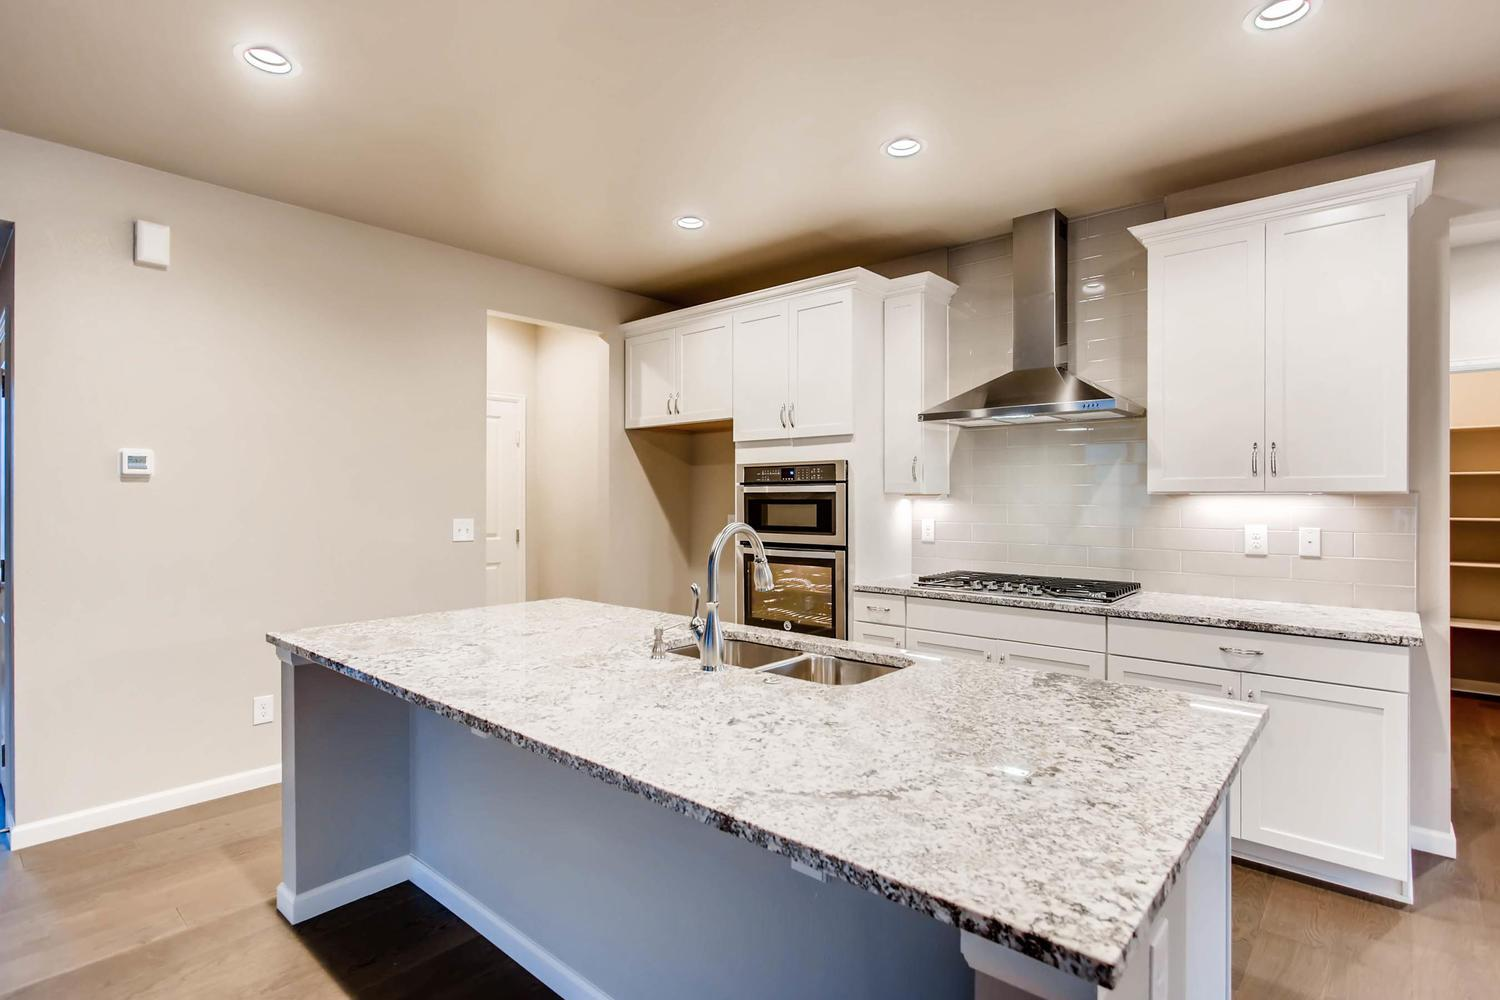 Kitchen featured in the Kittredge - Saddler Ridge By RichfieldHomes in Fort Collins-Loveland, CO